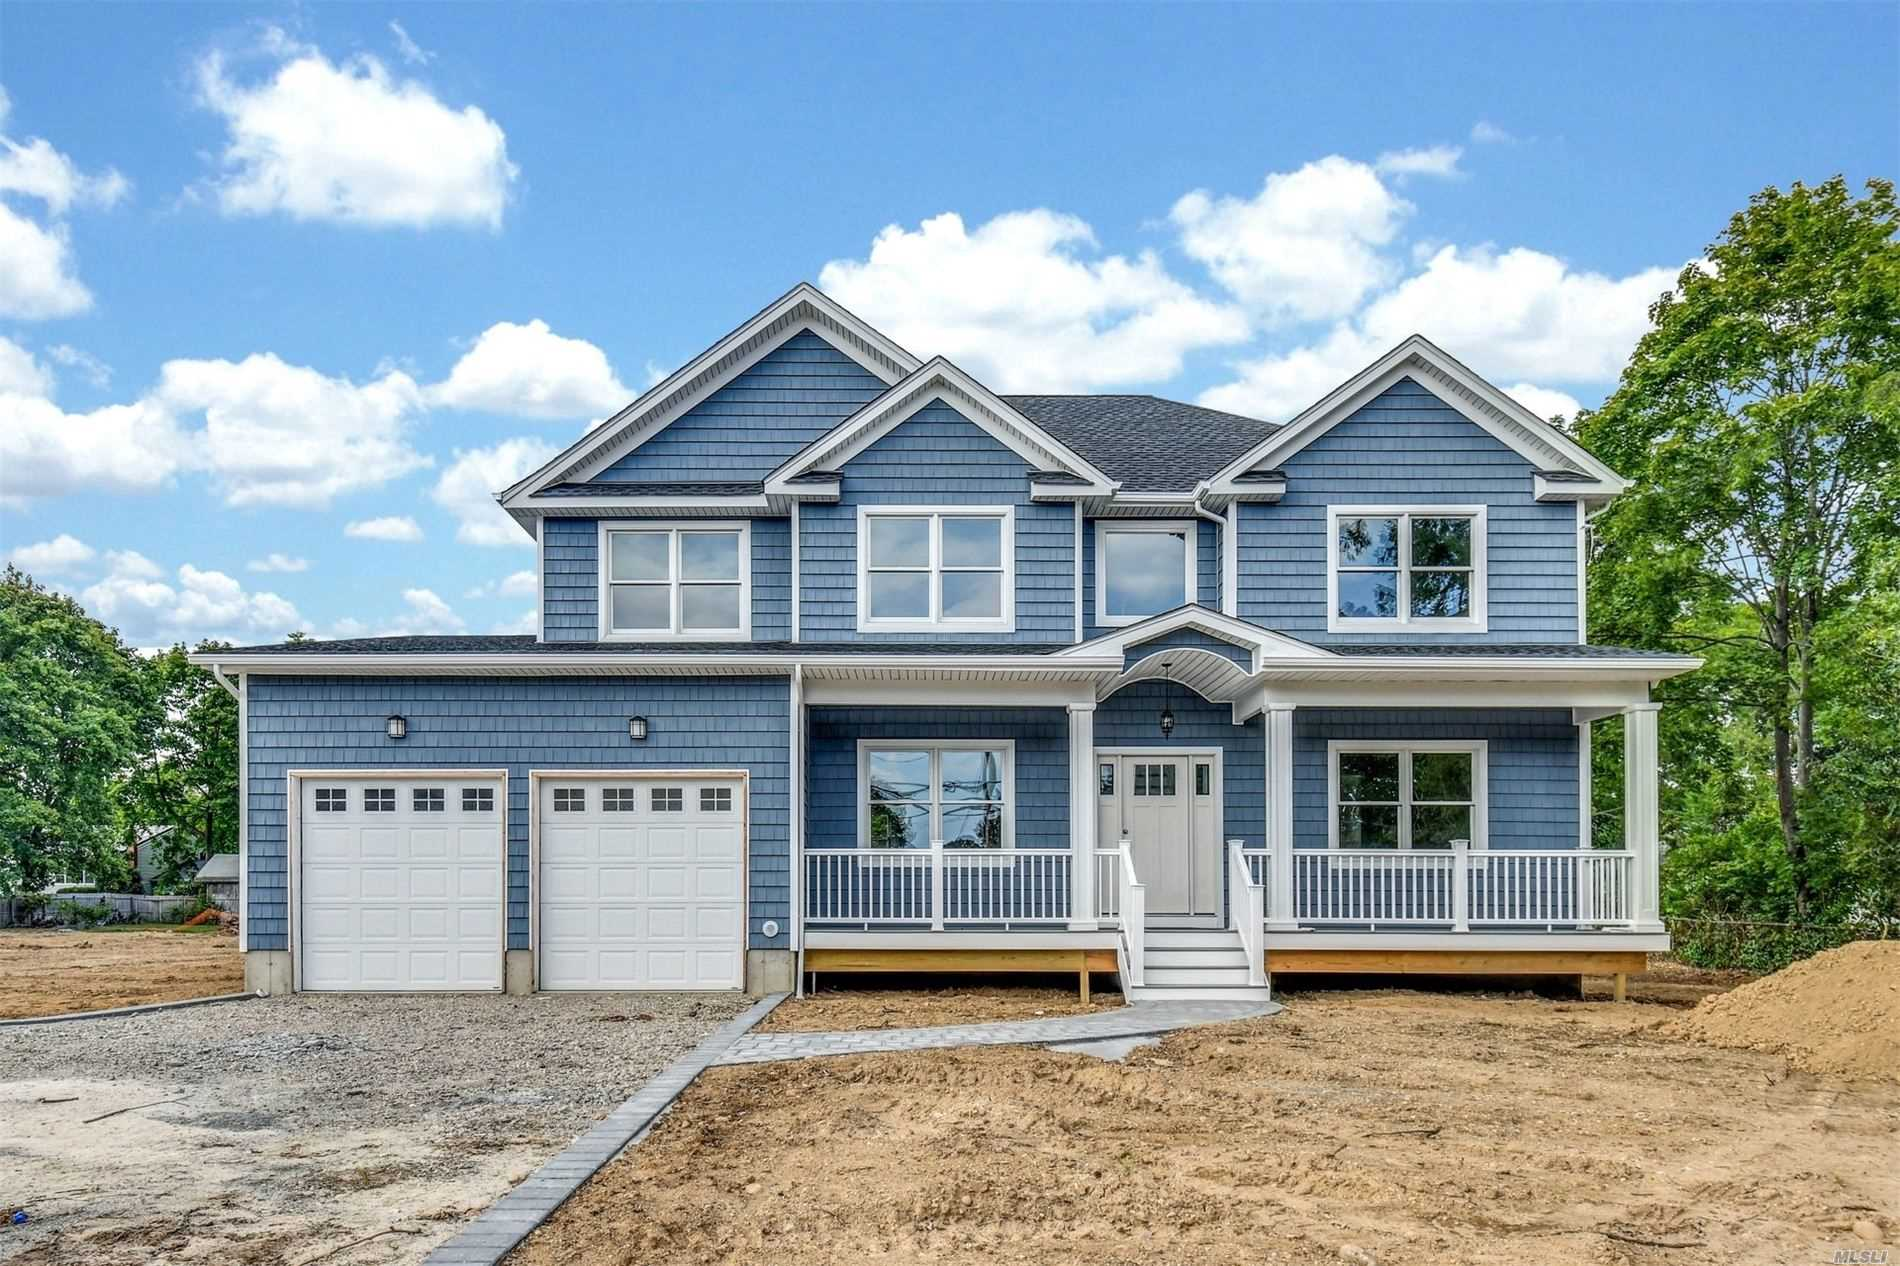 Custom Built Home W/Perfection Shake Front, State Of The Art Custom Kitchen W/Choice Of Granite, Ss Appliance Pkg. Hw Flrs 1st Flr & Upstairs Hallway, Wood Spindle Rails, Custom Baths W/Tub & Shower Enclosure, Ceramic Flrs, Cvac, Alarm, 200 Amp, Recess & Pendants, Lighting, Anderson Windows, Arch Roof, Paver Walk Way & Timber Tech Front Porch ...Much More Call For Details.